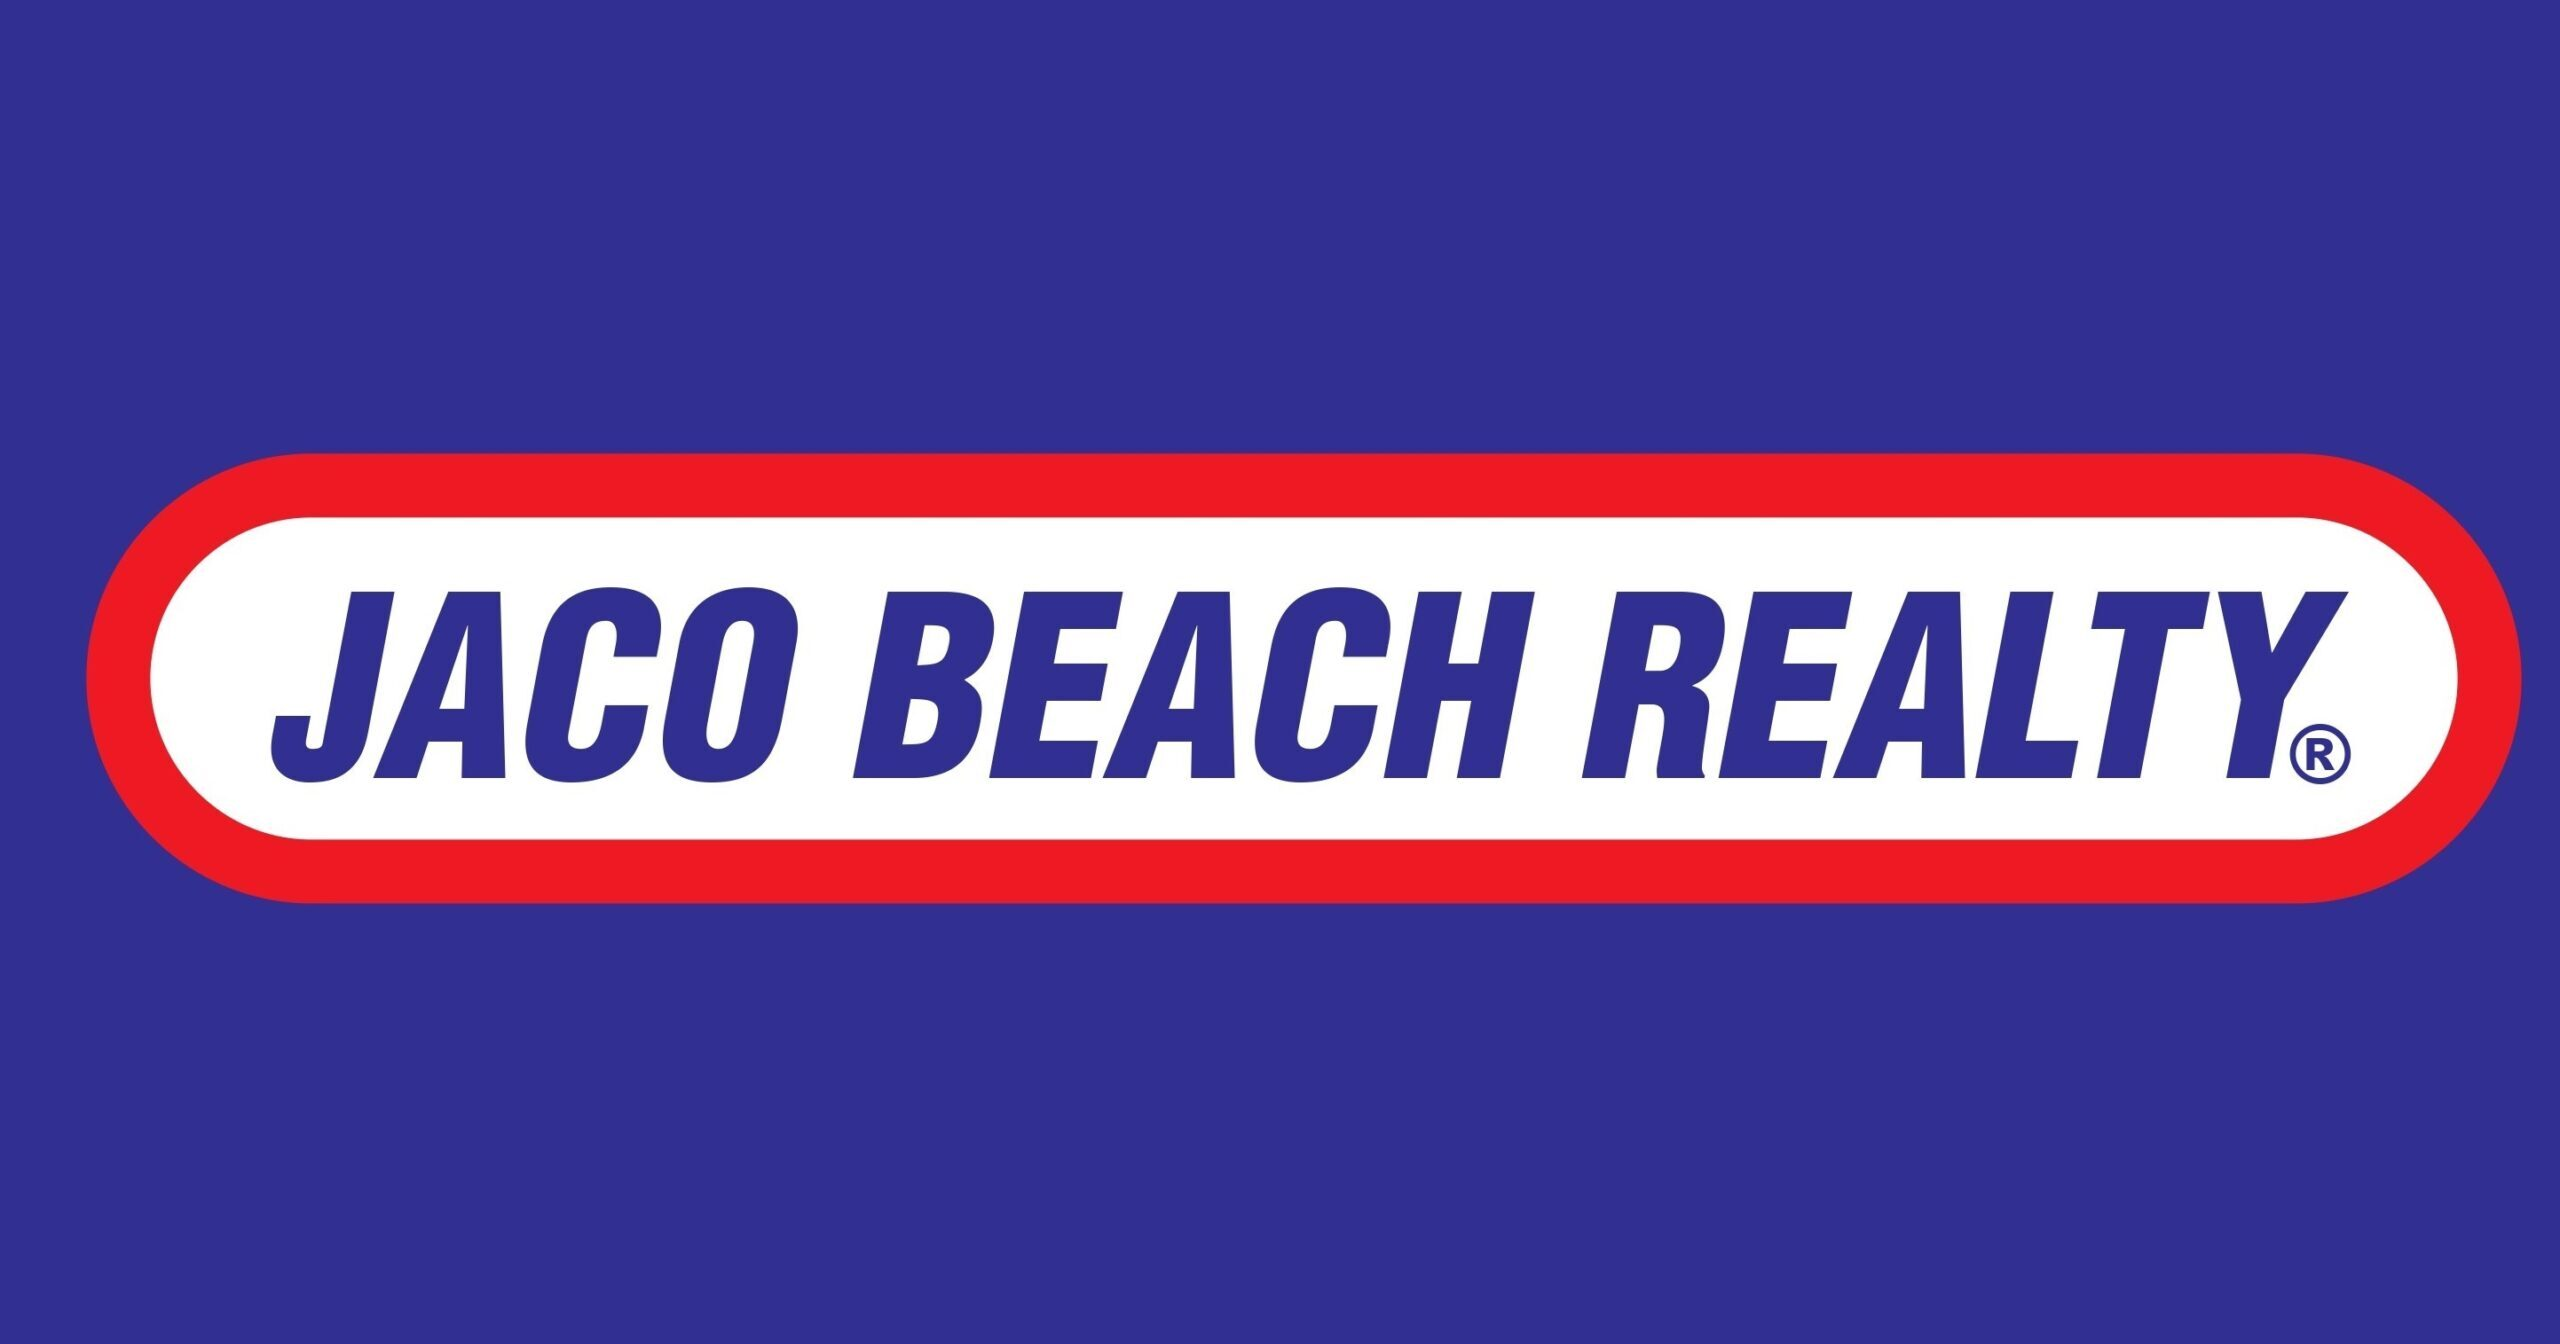 Real Estate Jaco Properties for Sale in Jaco Beach and Rentals